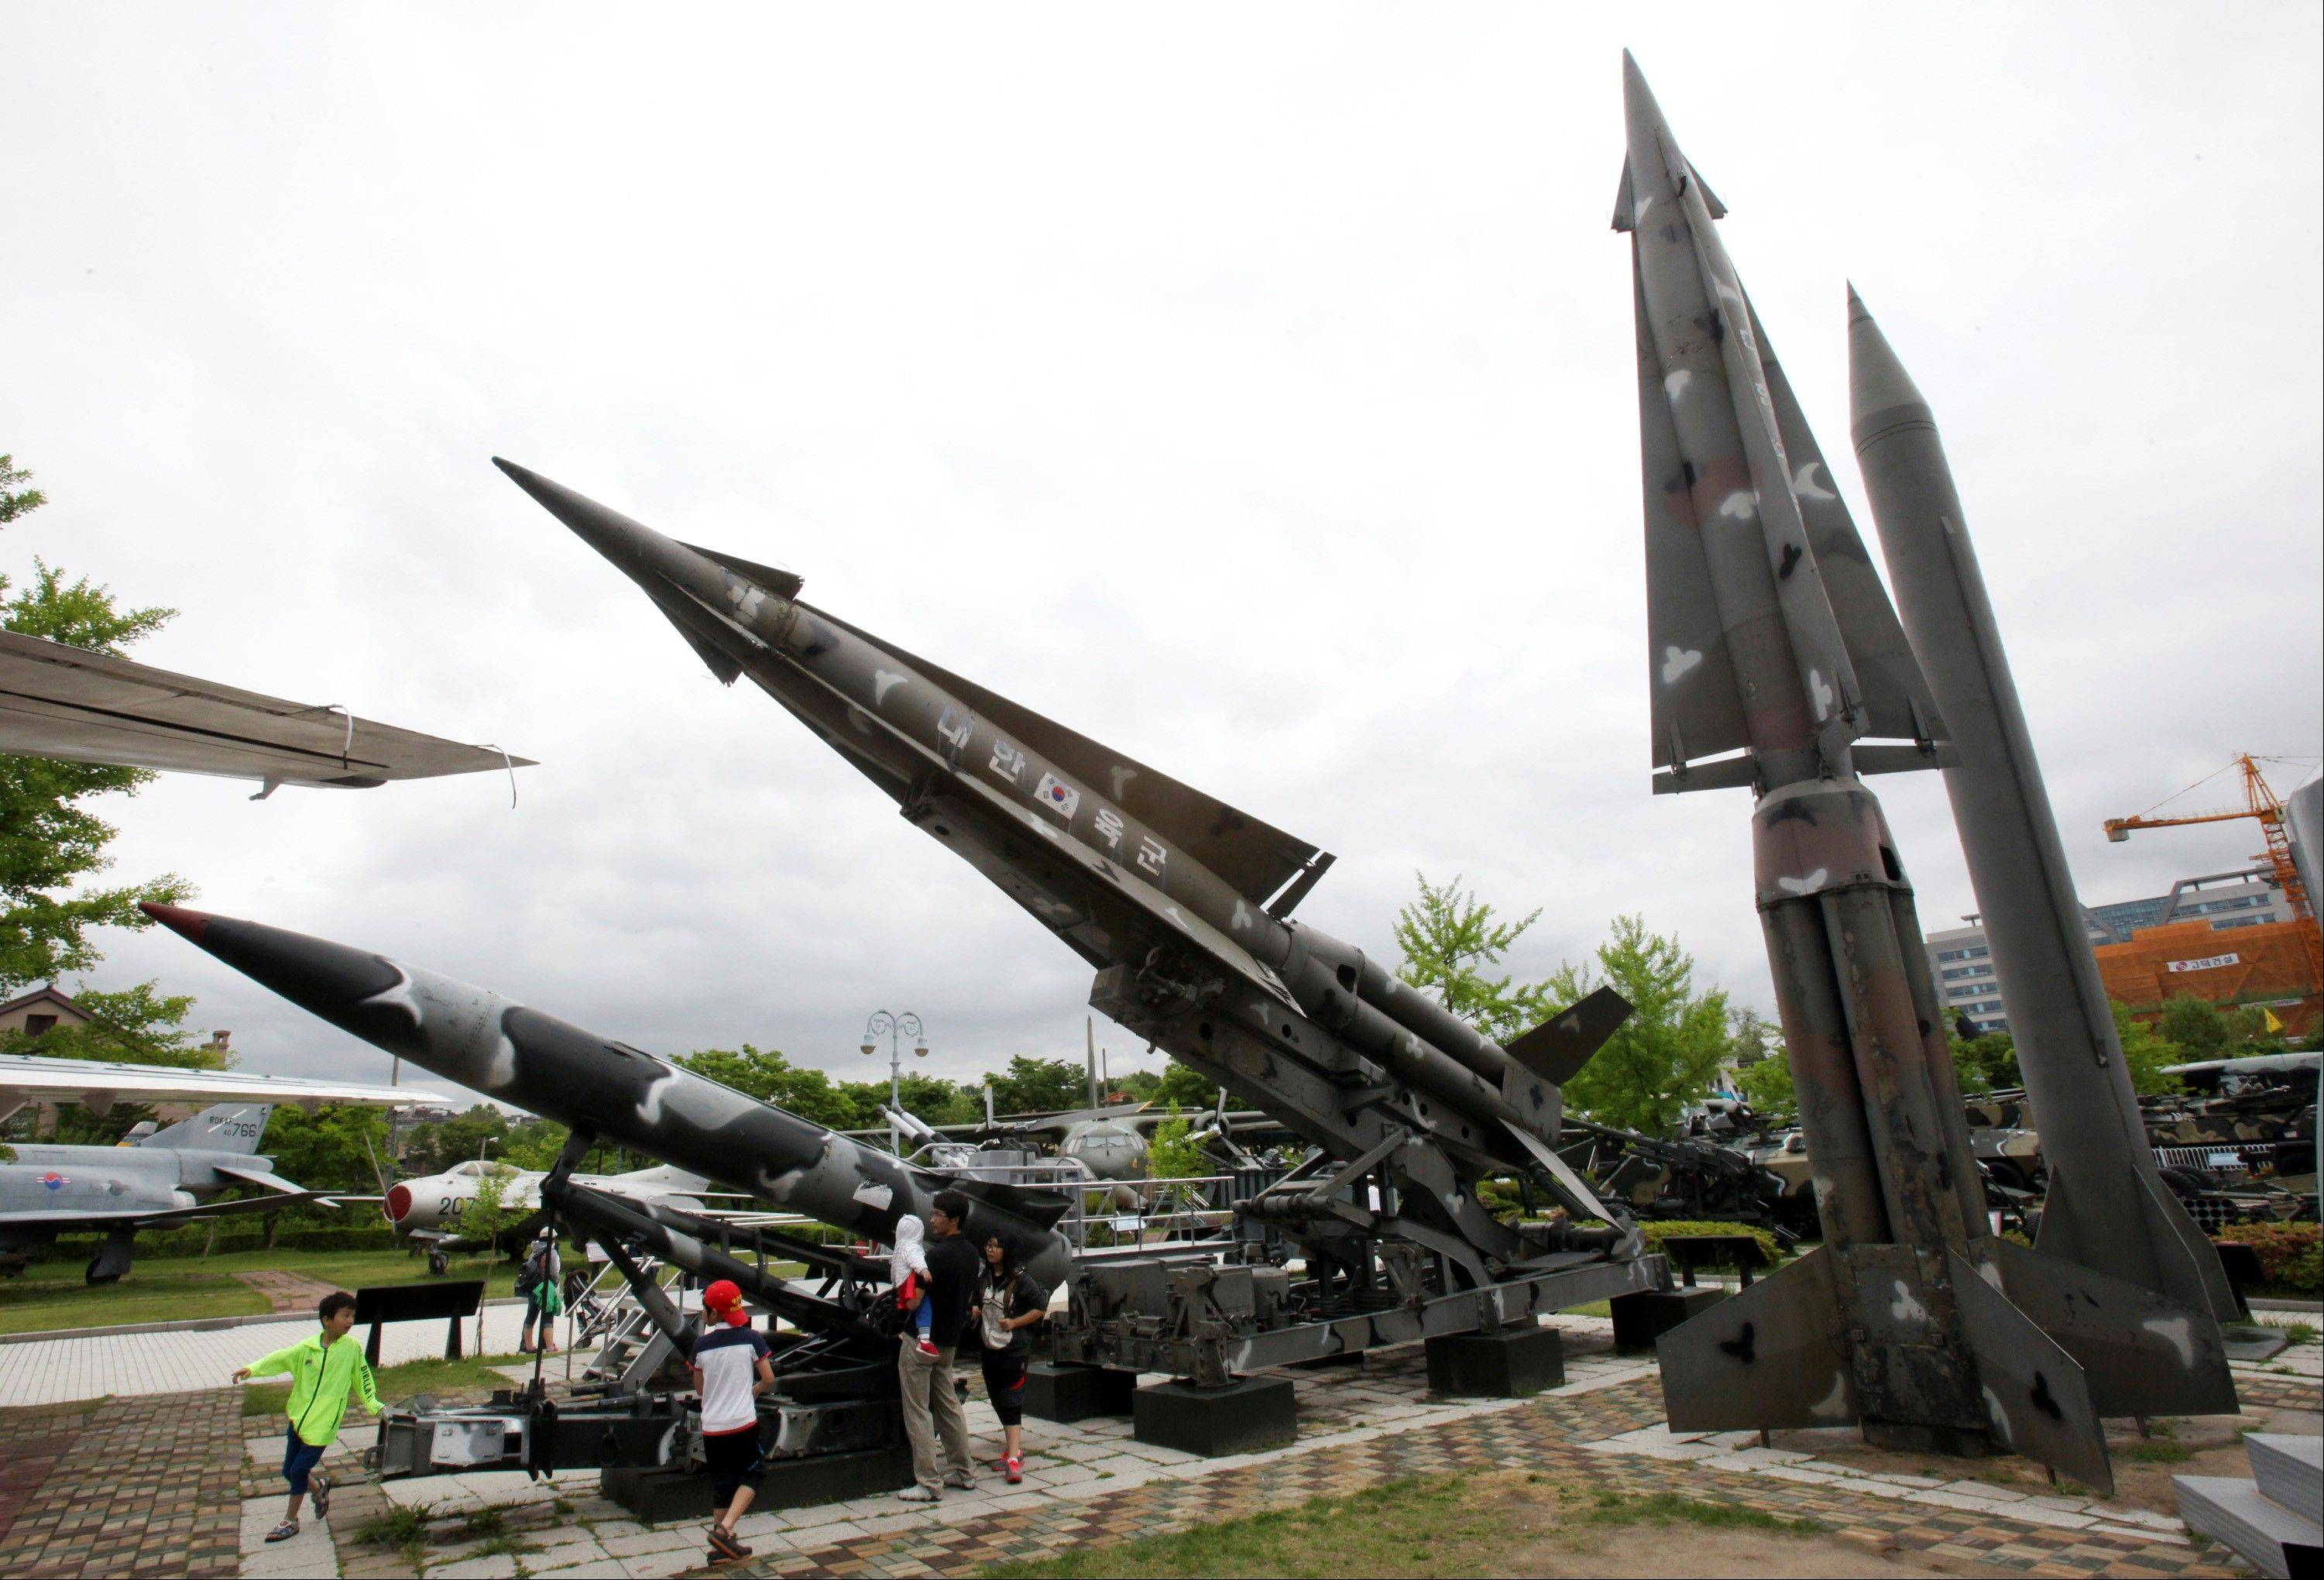 A mock Scud-B missile of North Korea, right, and other South Korean missiles are displayed at Korea War Memorial Museum in Seoul, South Korea, Sunday, May 19, 2013. North Korea fired a projectile into waters off its eastern coast Sunday, a day after launching three short-range missiles in the same area, officials said.